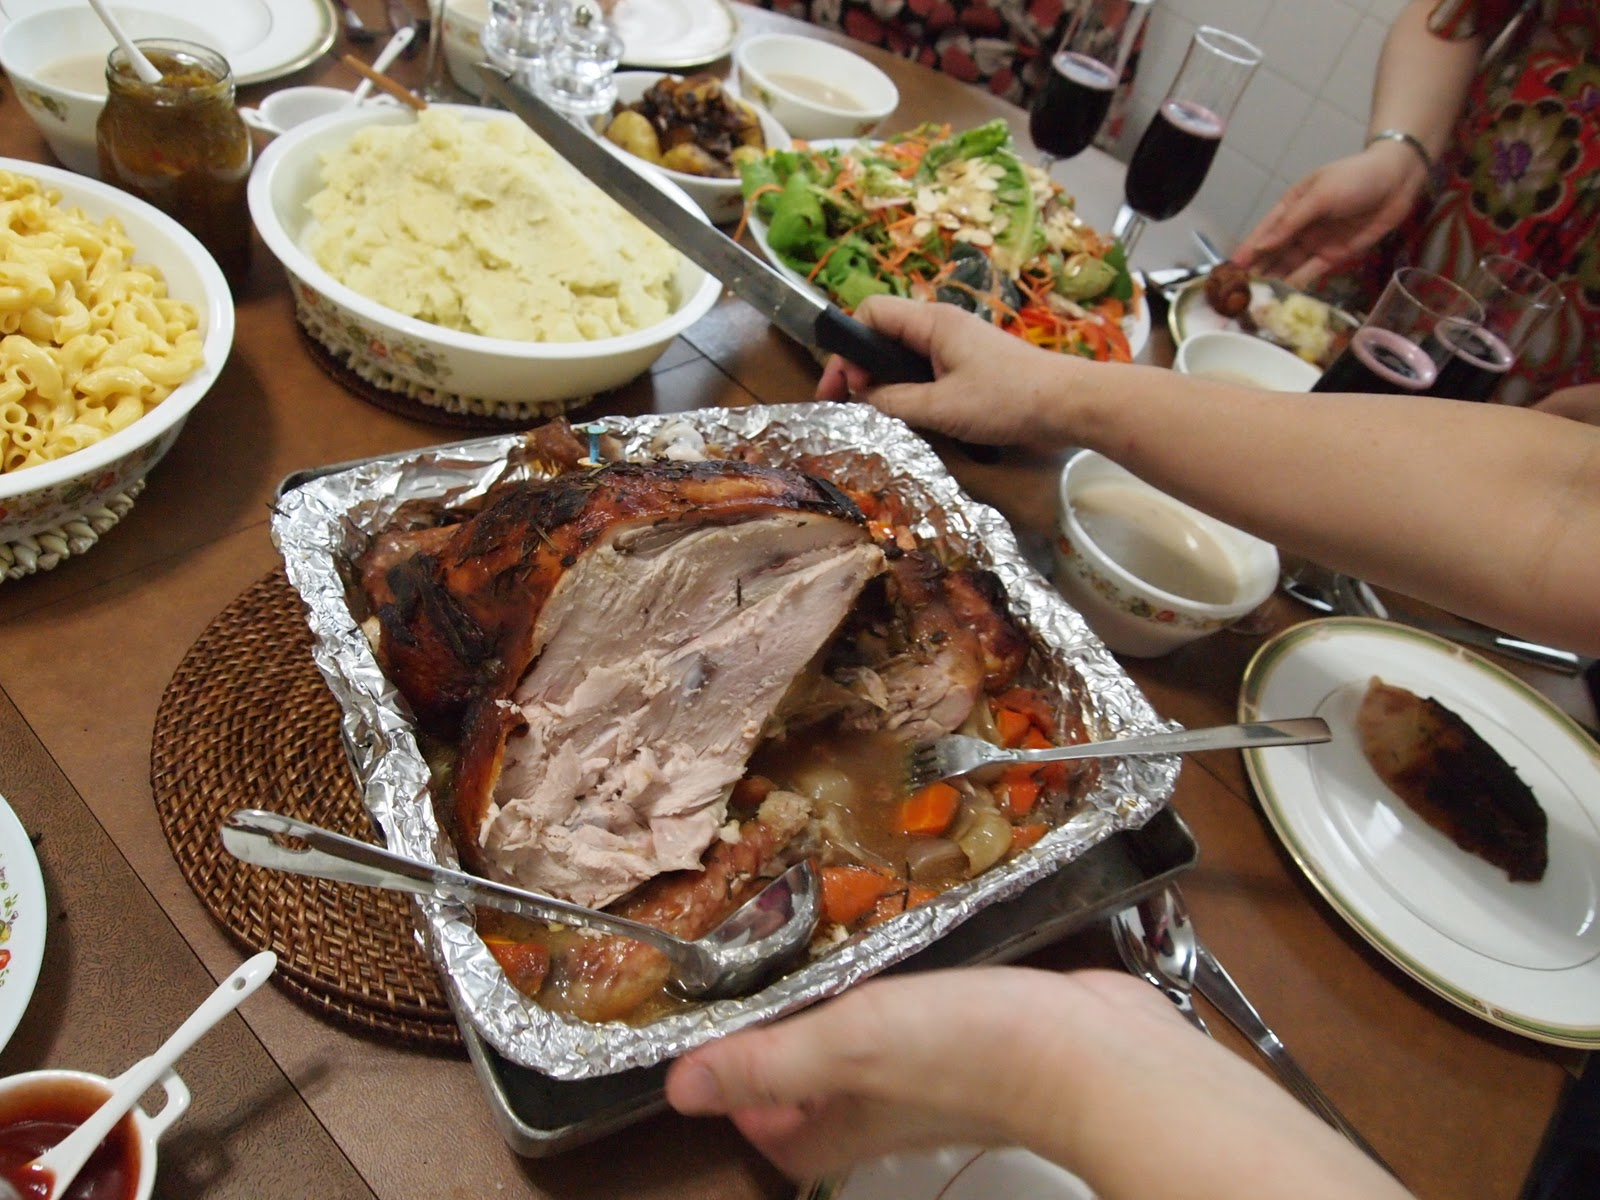 we have our turkey simple without stuffing as i always feel stuffed after having turkey with stuffing which then leaves my poor tummy no room for all the - Simple Christmas Dinner